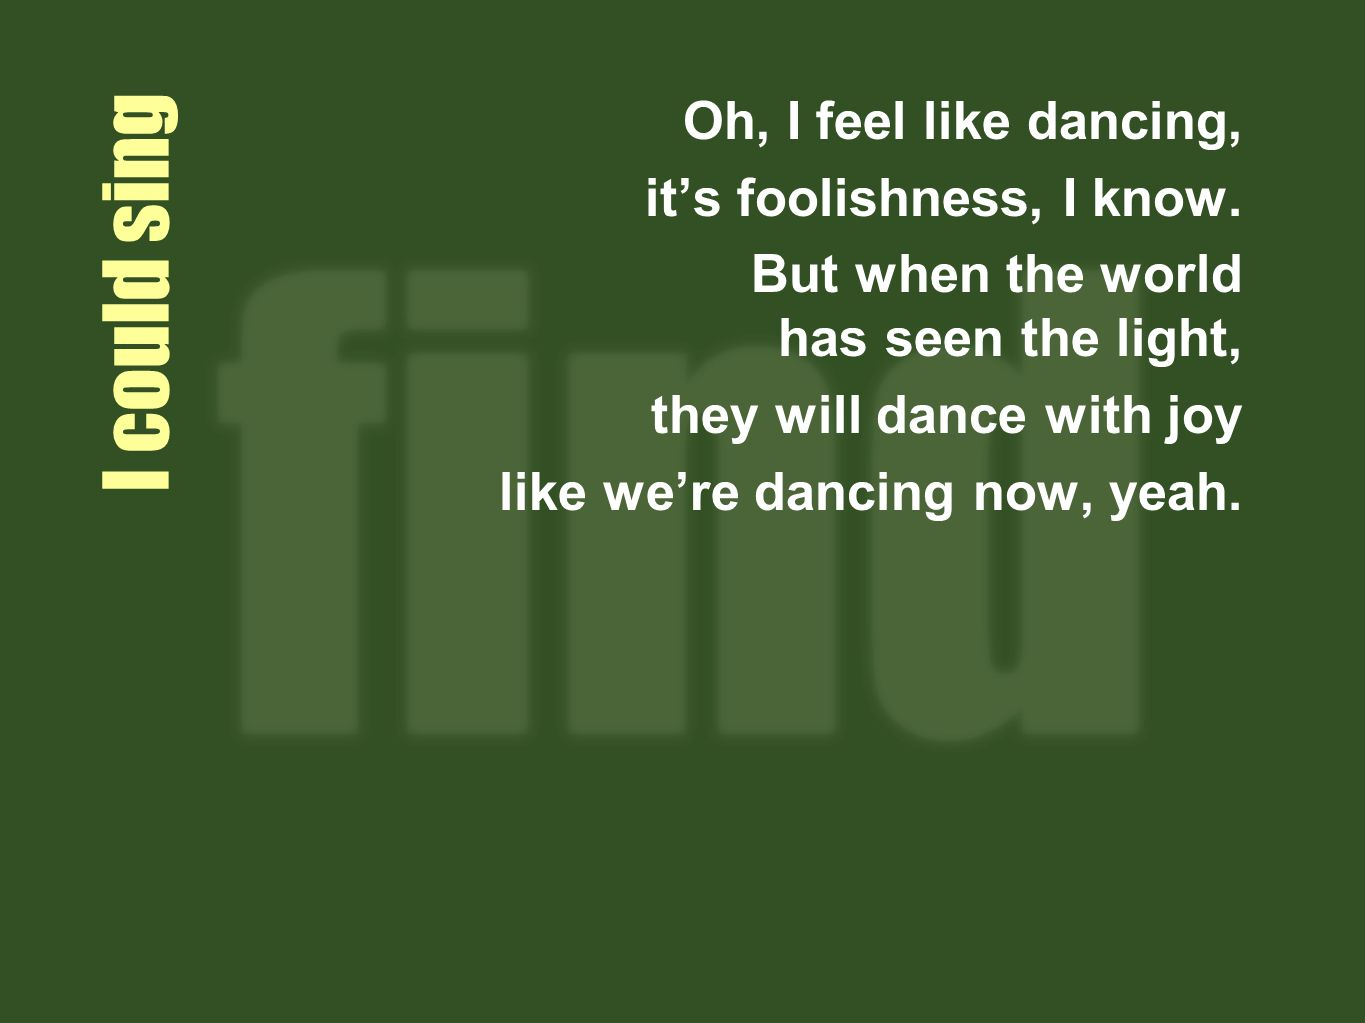 I could sing Oh, I feel like dancing, its foolishness, I know.